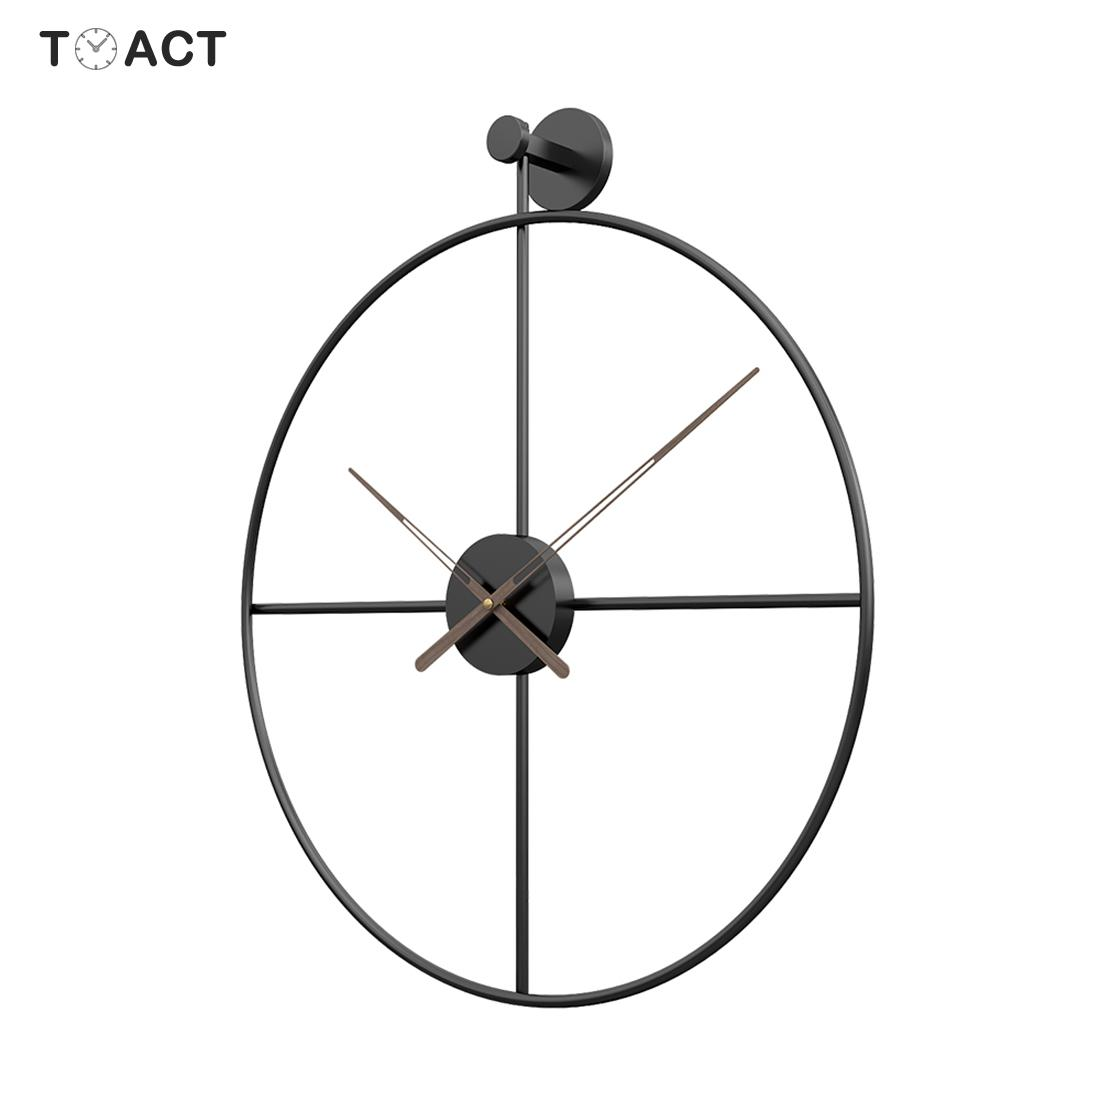 Large Wall Clock Modern Design Clocks For Home Decor Office Iron Art Watches European Style Hanging Wall Watch Christmas Gift